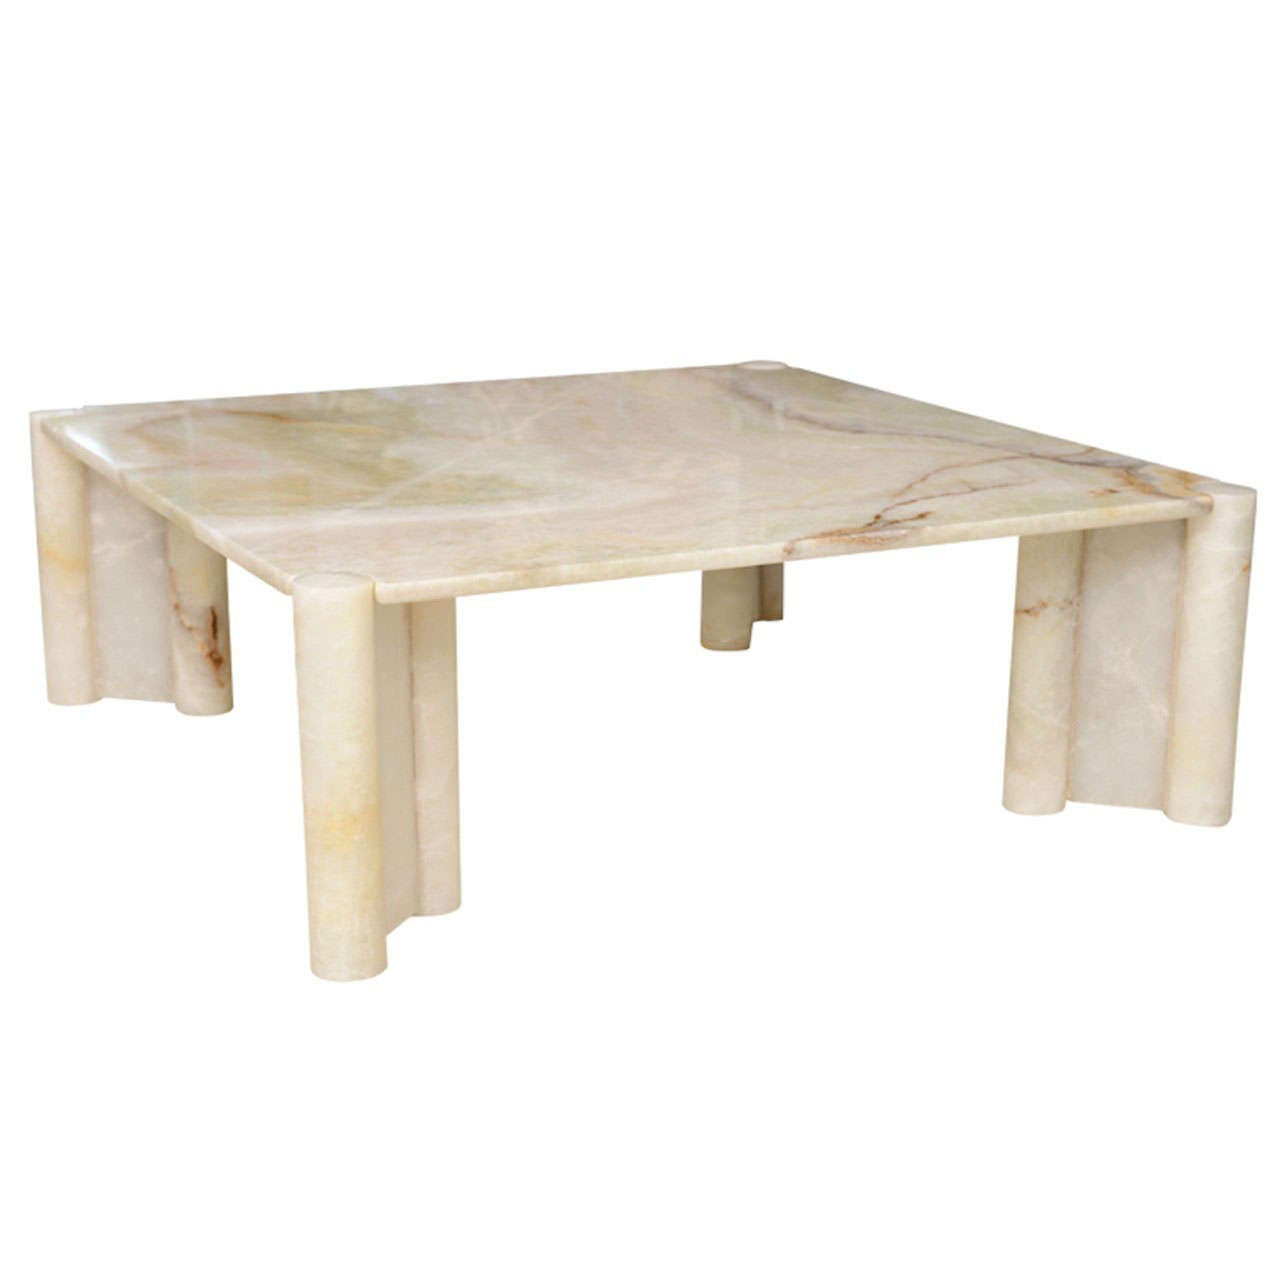 Rare Gae Aulenti Onyx Jumbo Low Table Italy 1970s For Sale At